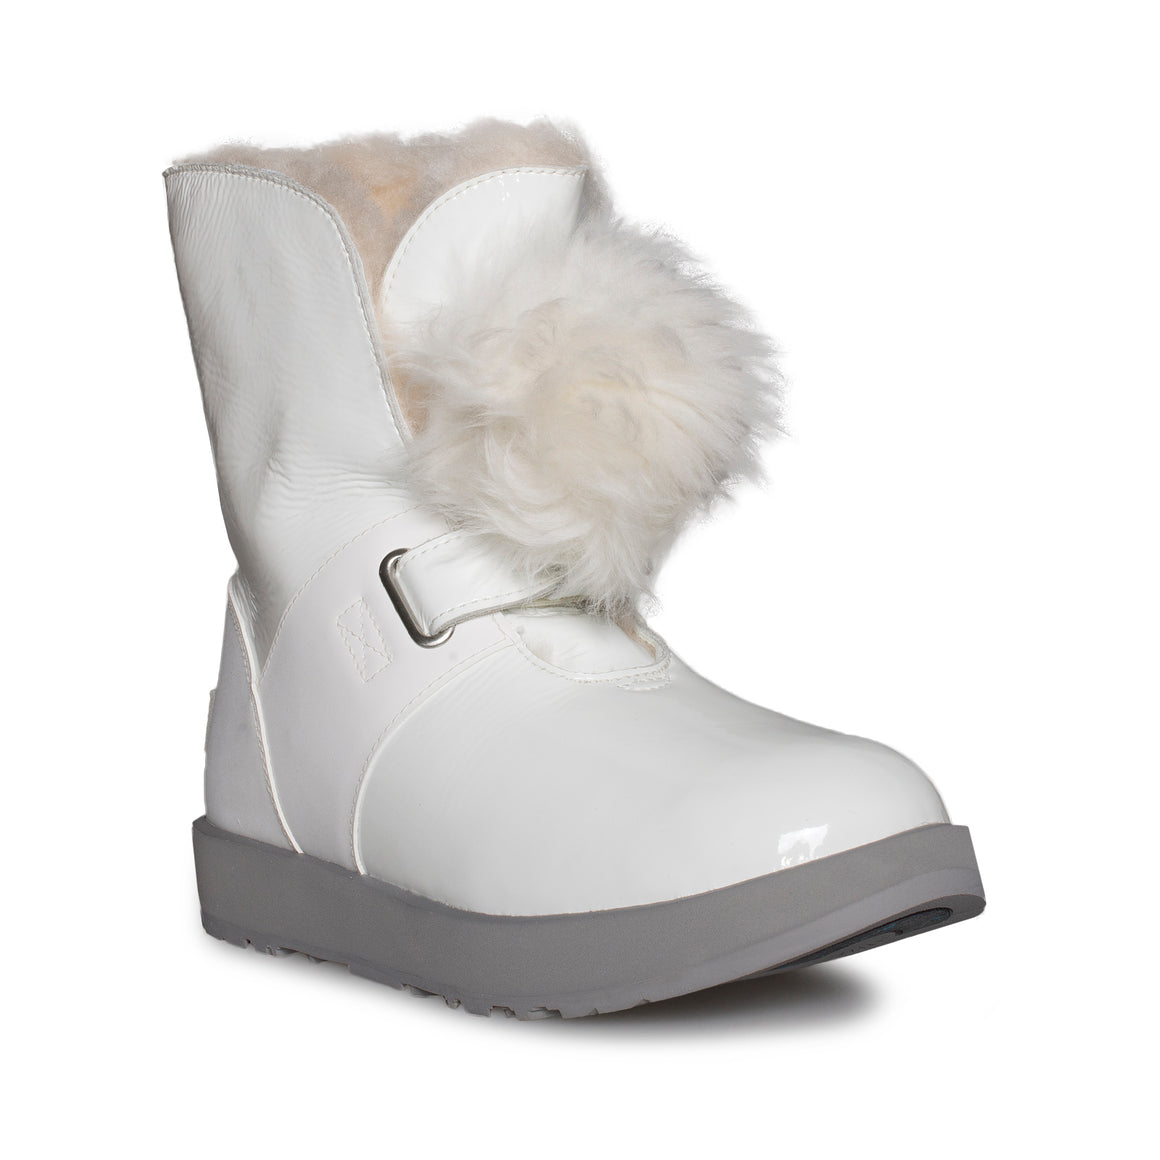 UGG Isley Patent Waterproof White Boots - Women's